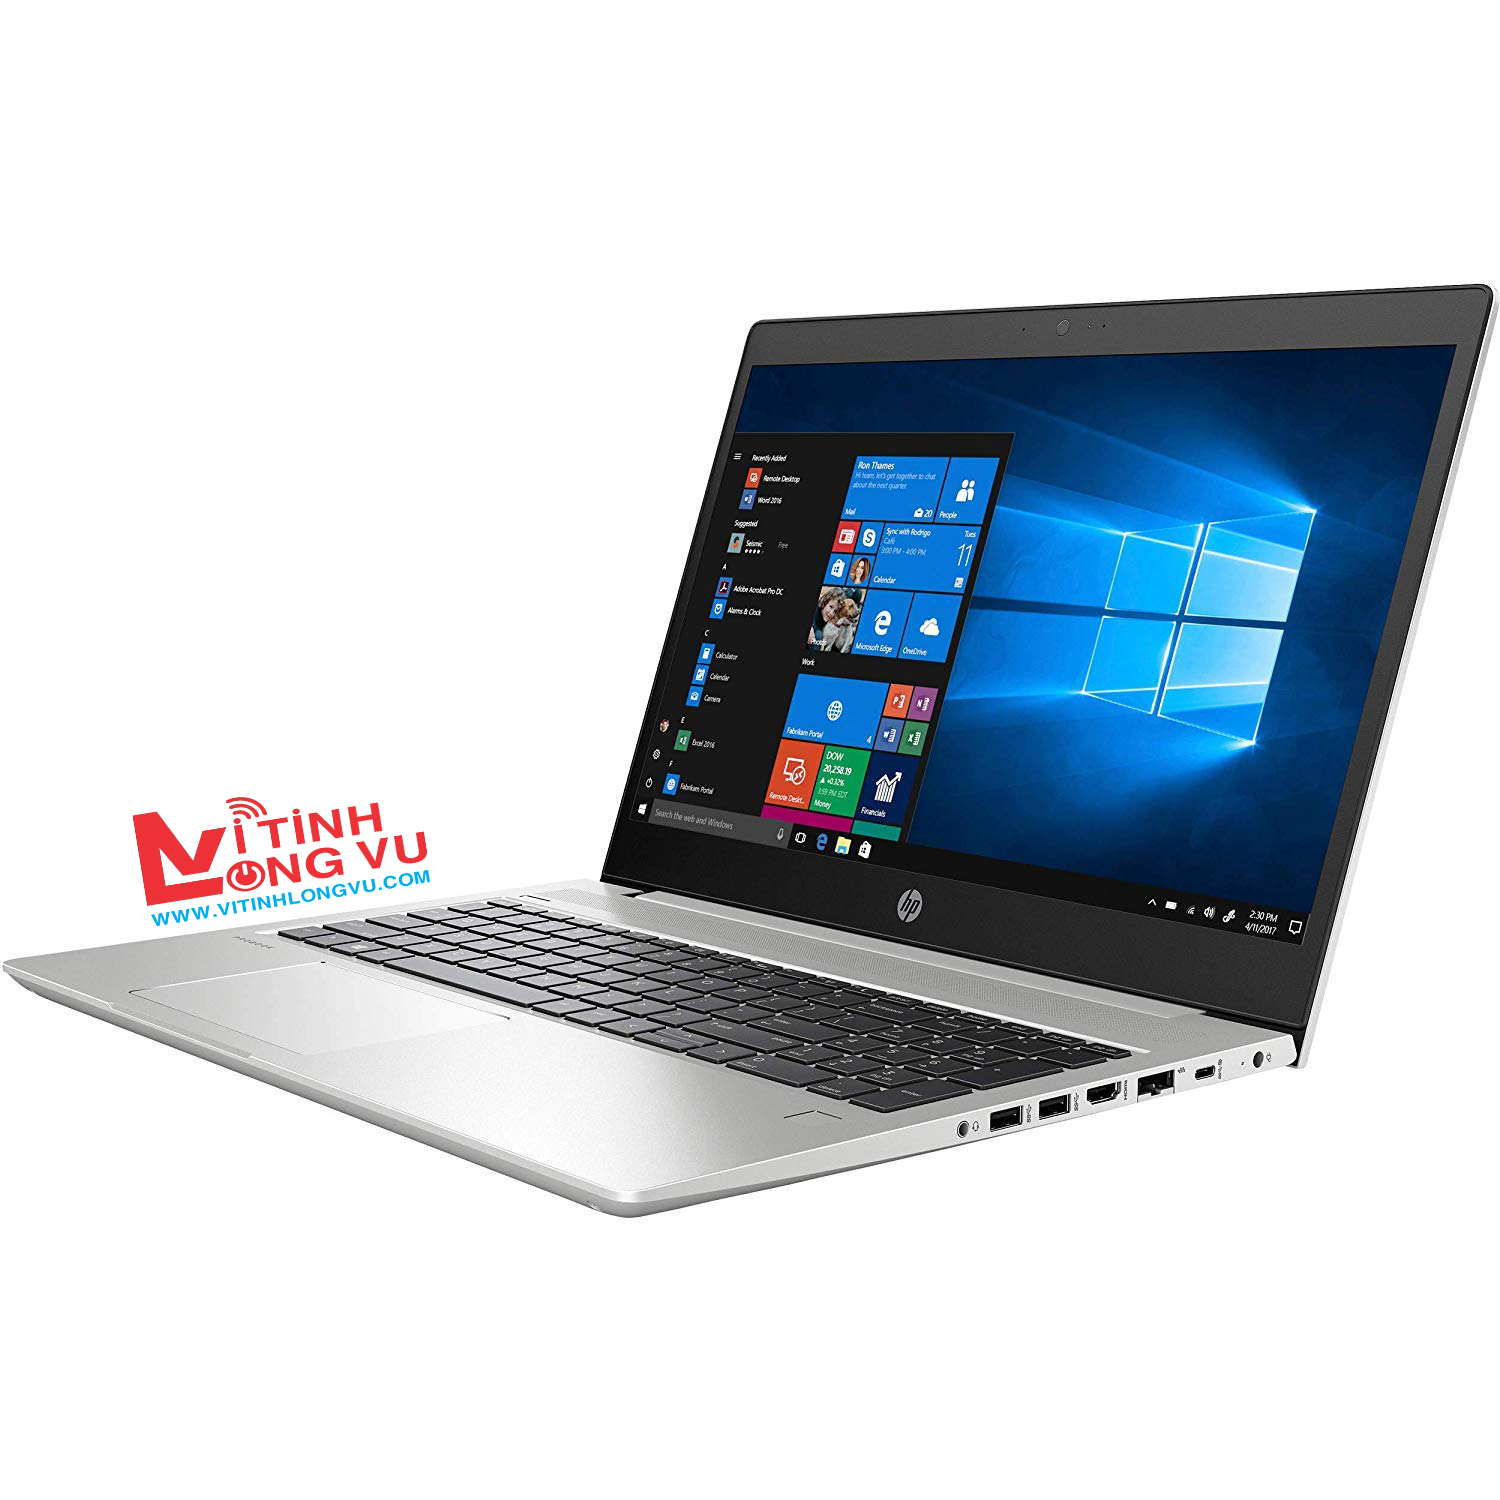 hp 840 g3 i5 6300 i7 6600u 8gb 256gb 16gb 512gb 14FHD Windows 10